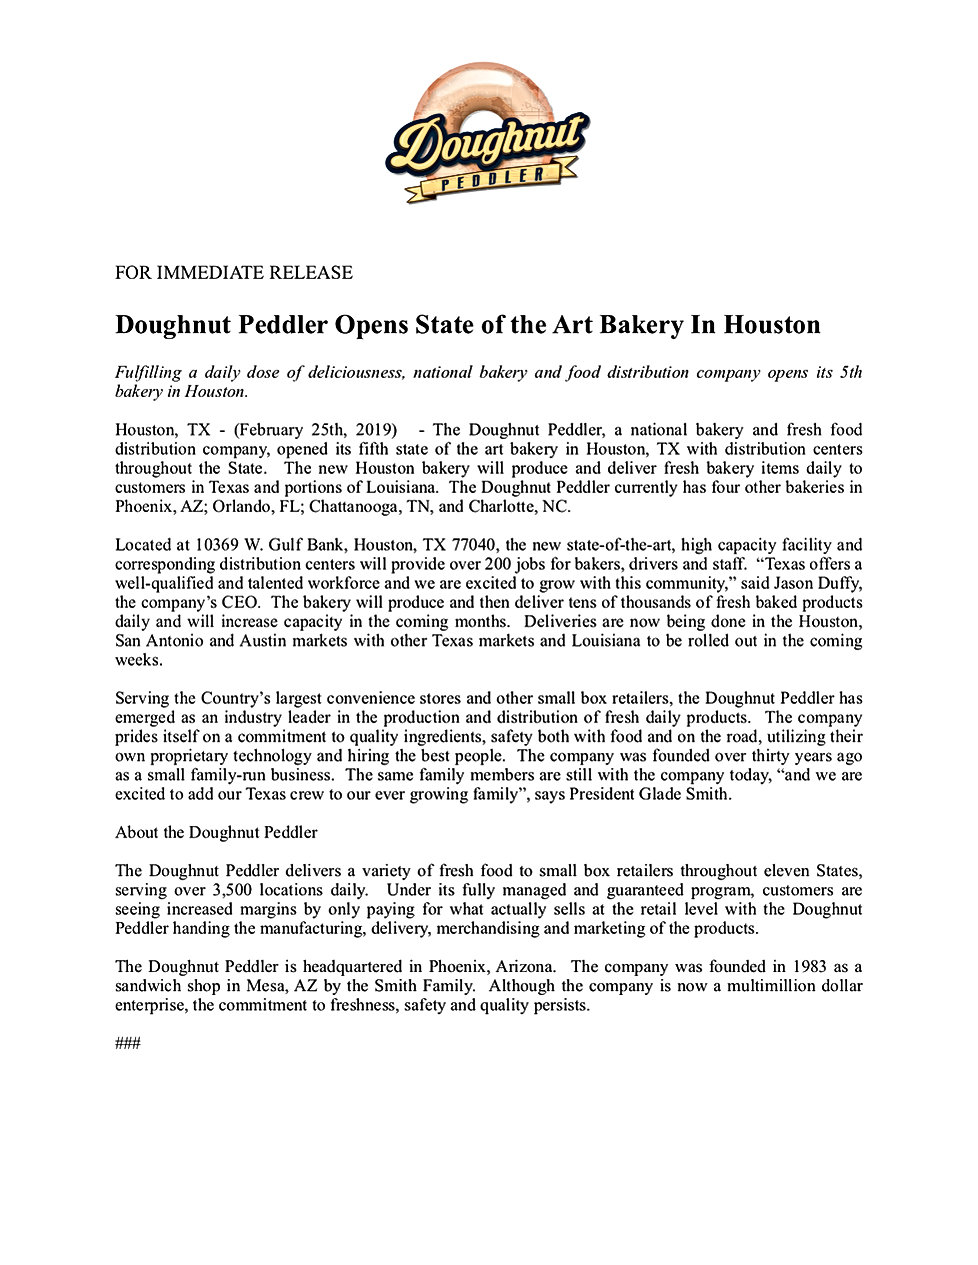 TDP Houston Opening Press Release 19.02.